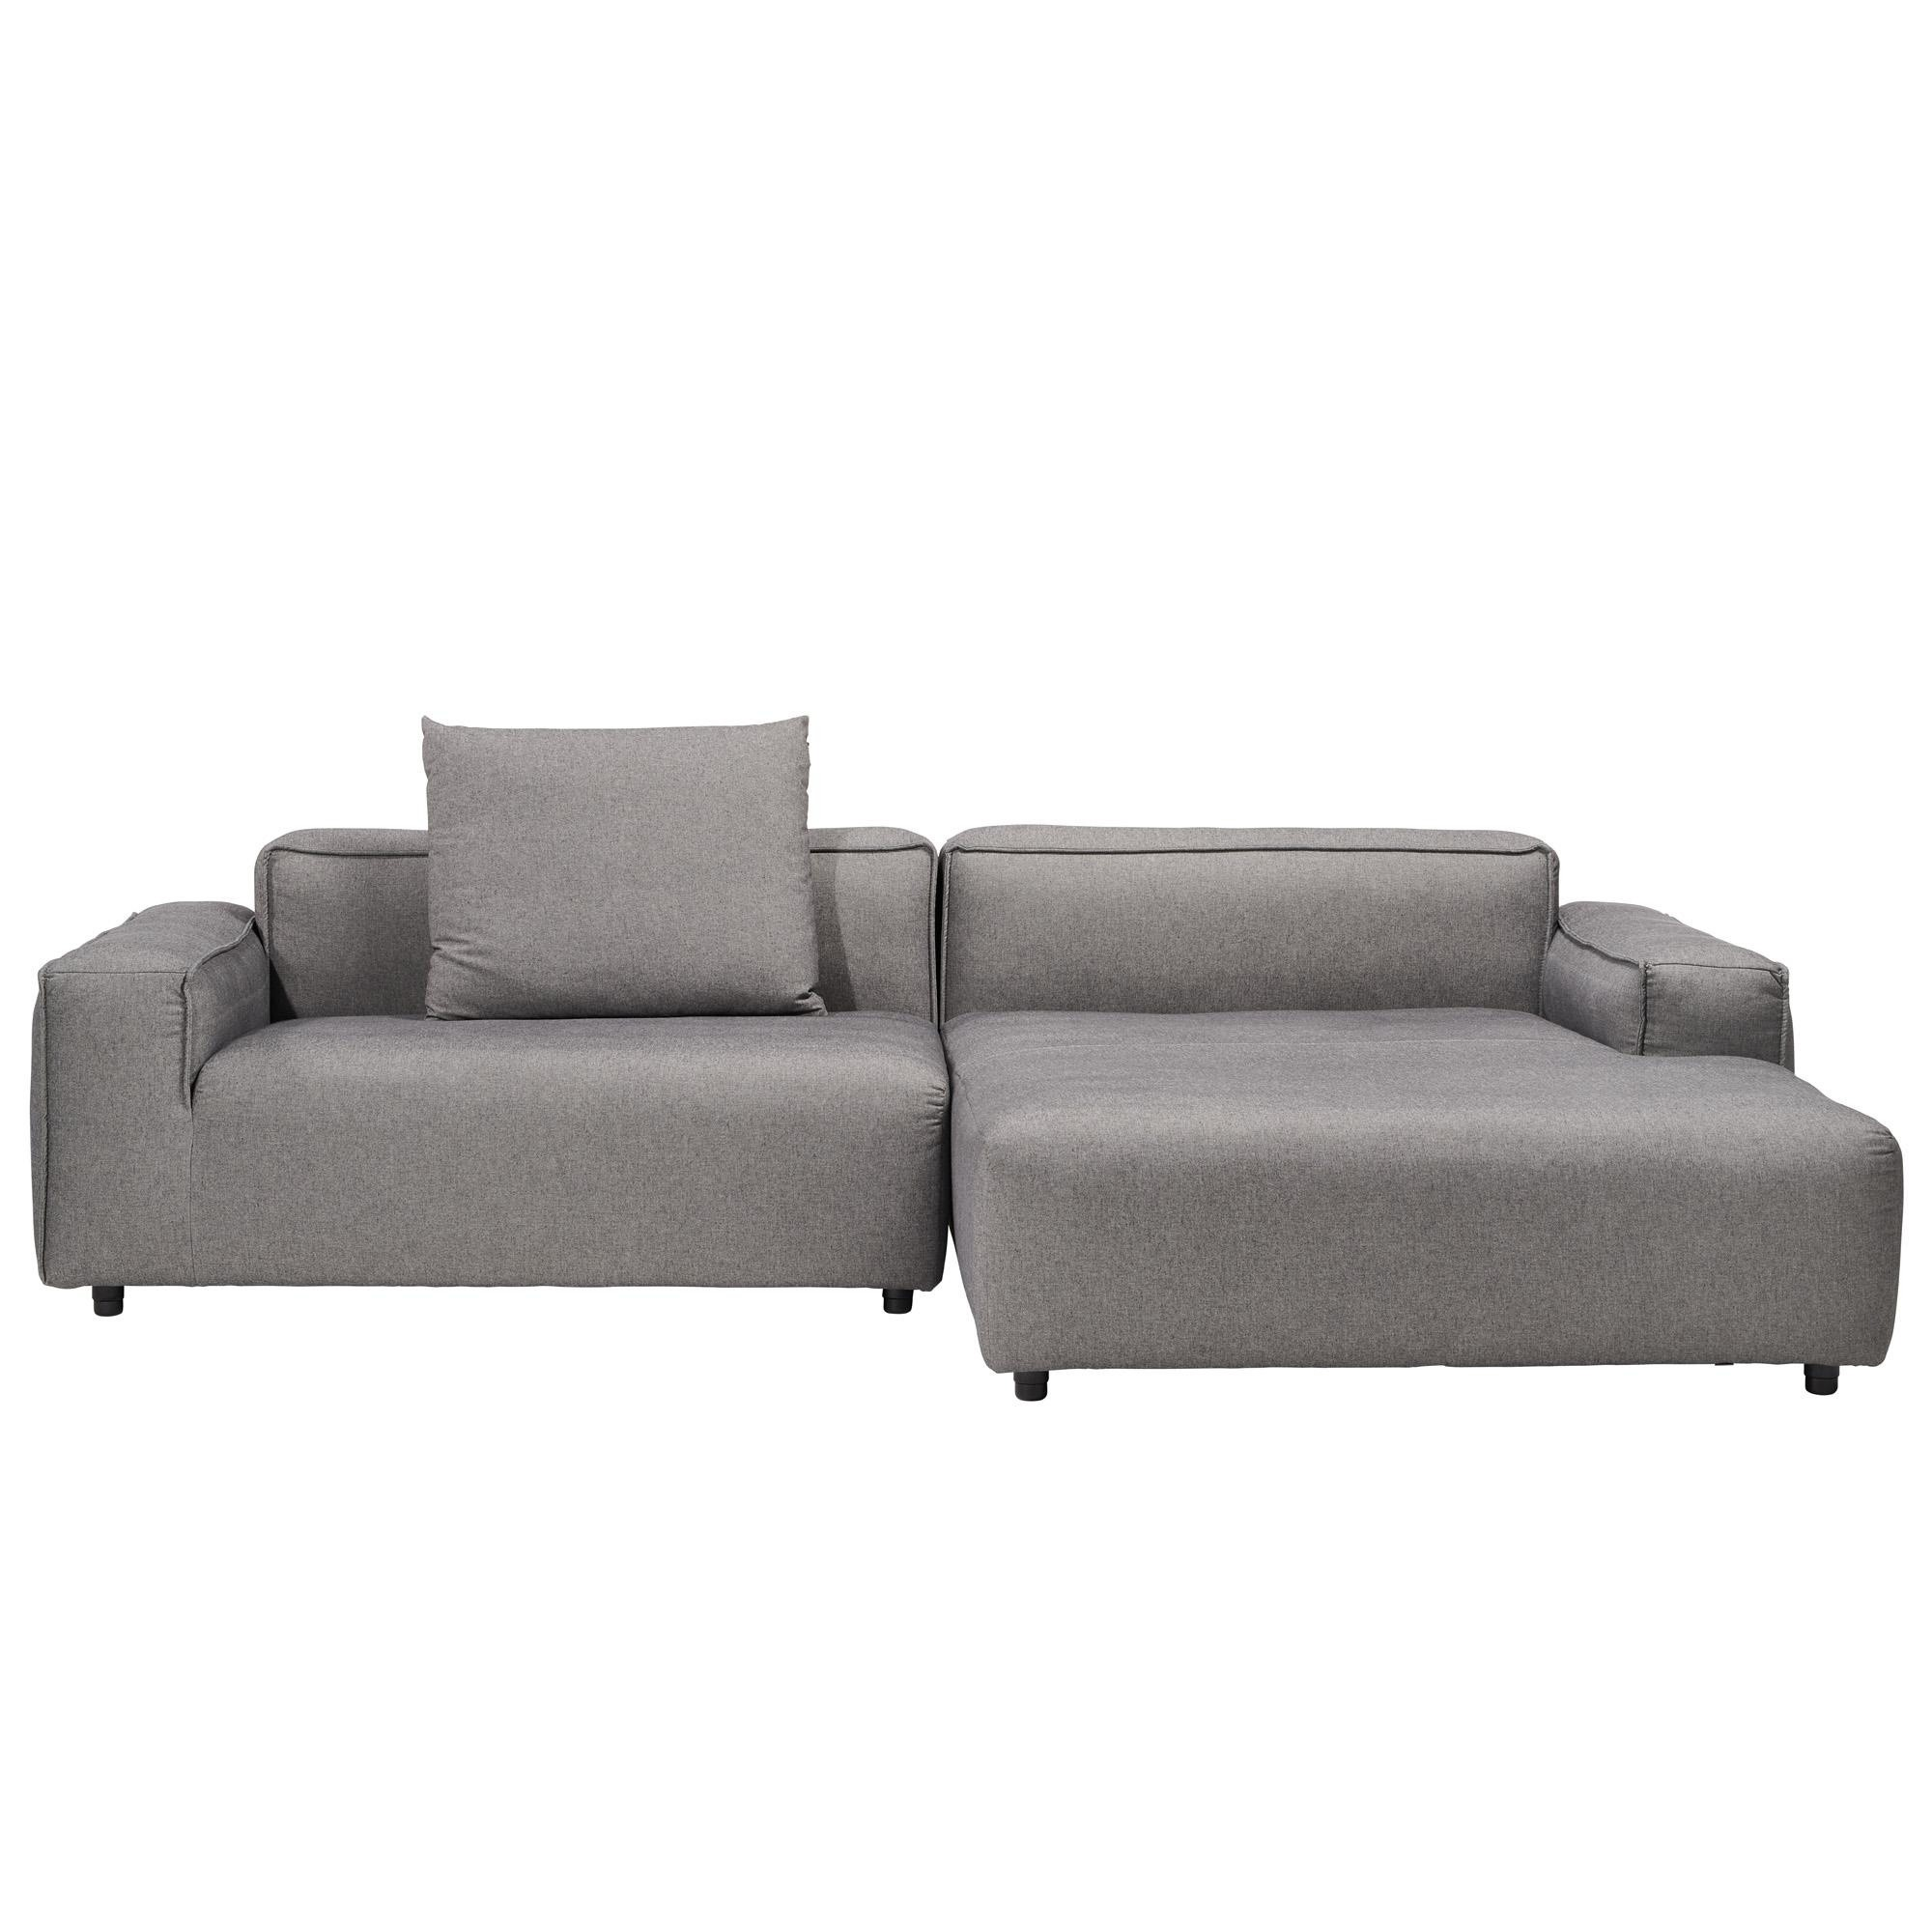 Freistil Rolf Benz Freistil 175 Ecksofa Ambientedirect